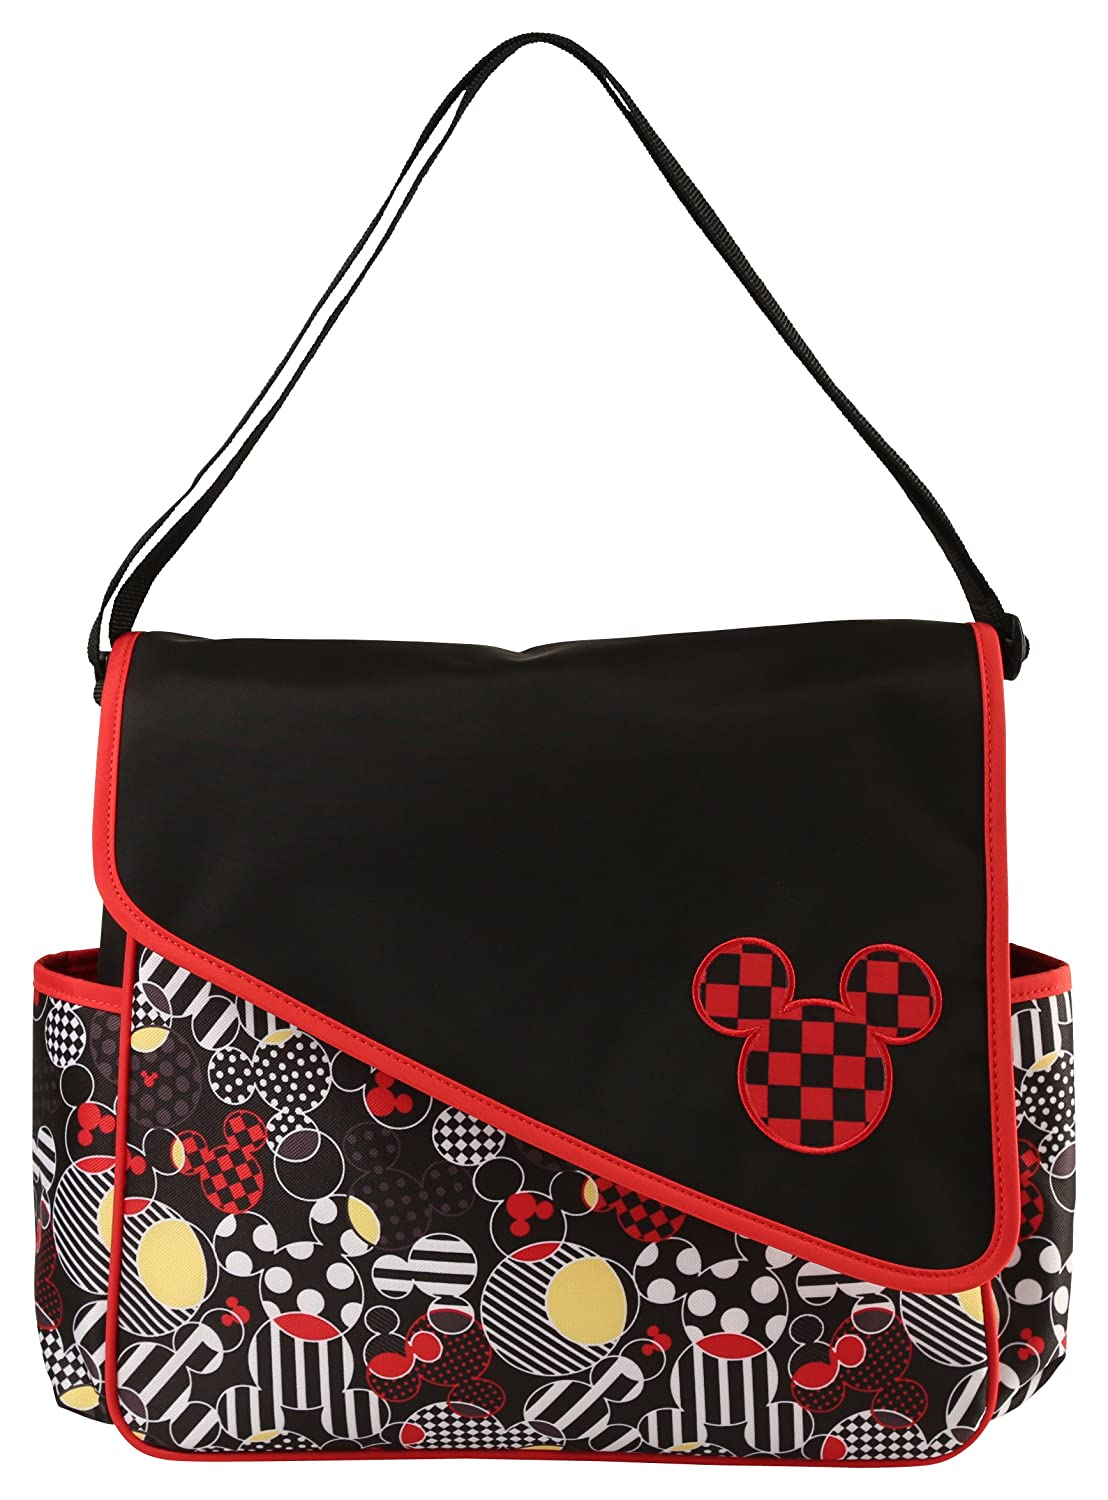 Amazon.com : Disney Mickey Mouse Diaper Bag with Asymetrical Flap, Toss Heads Print : Baby